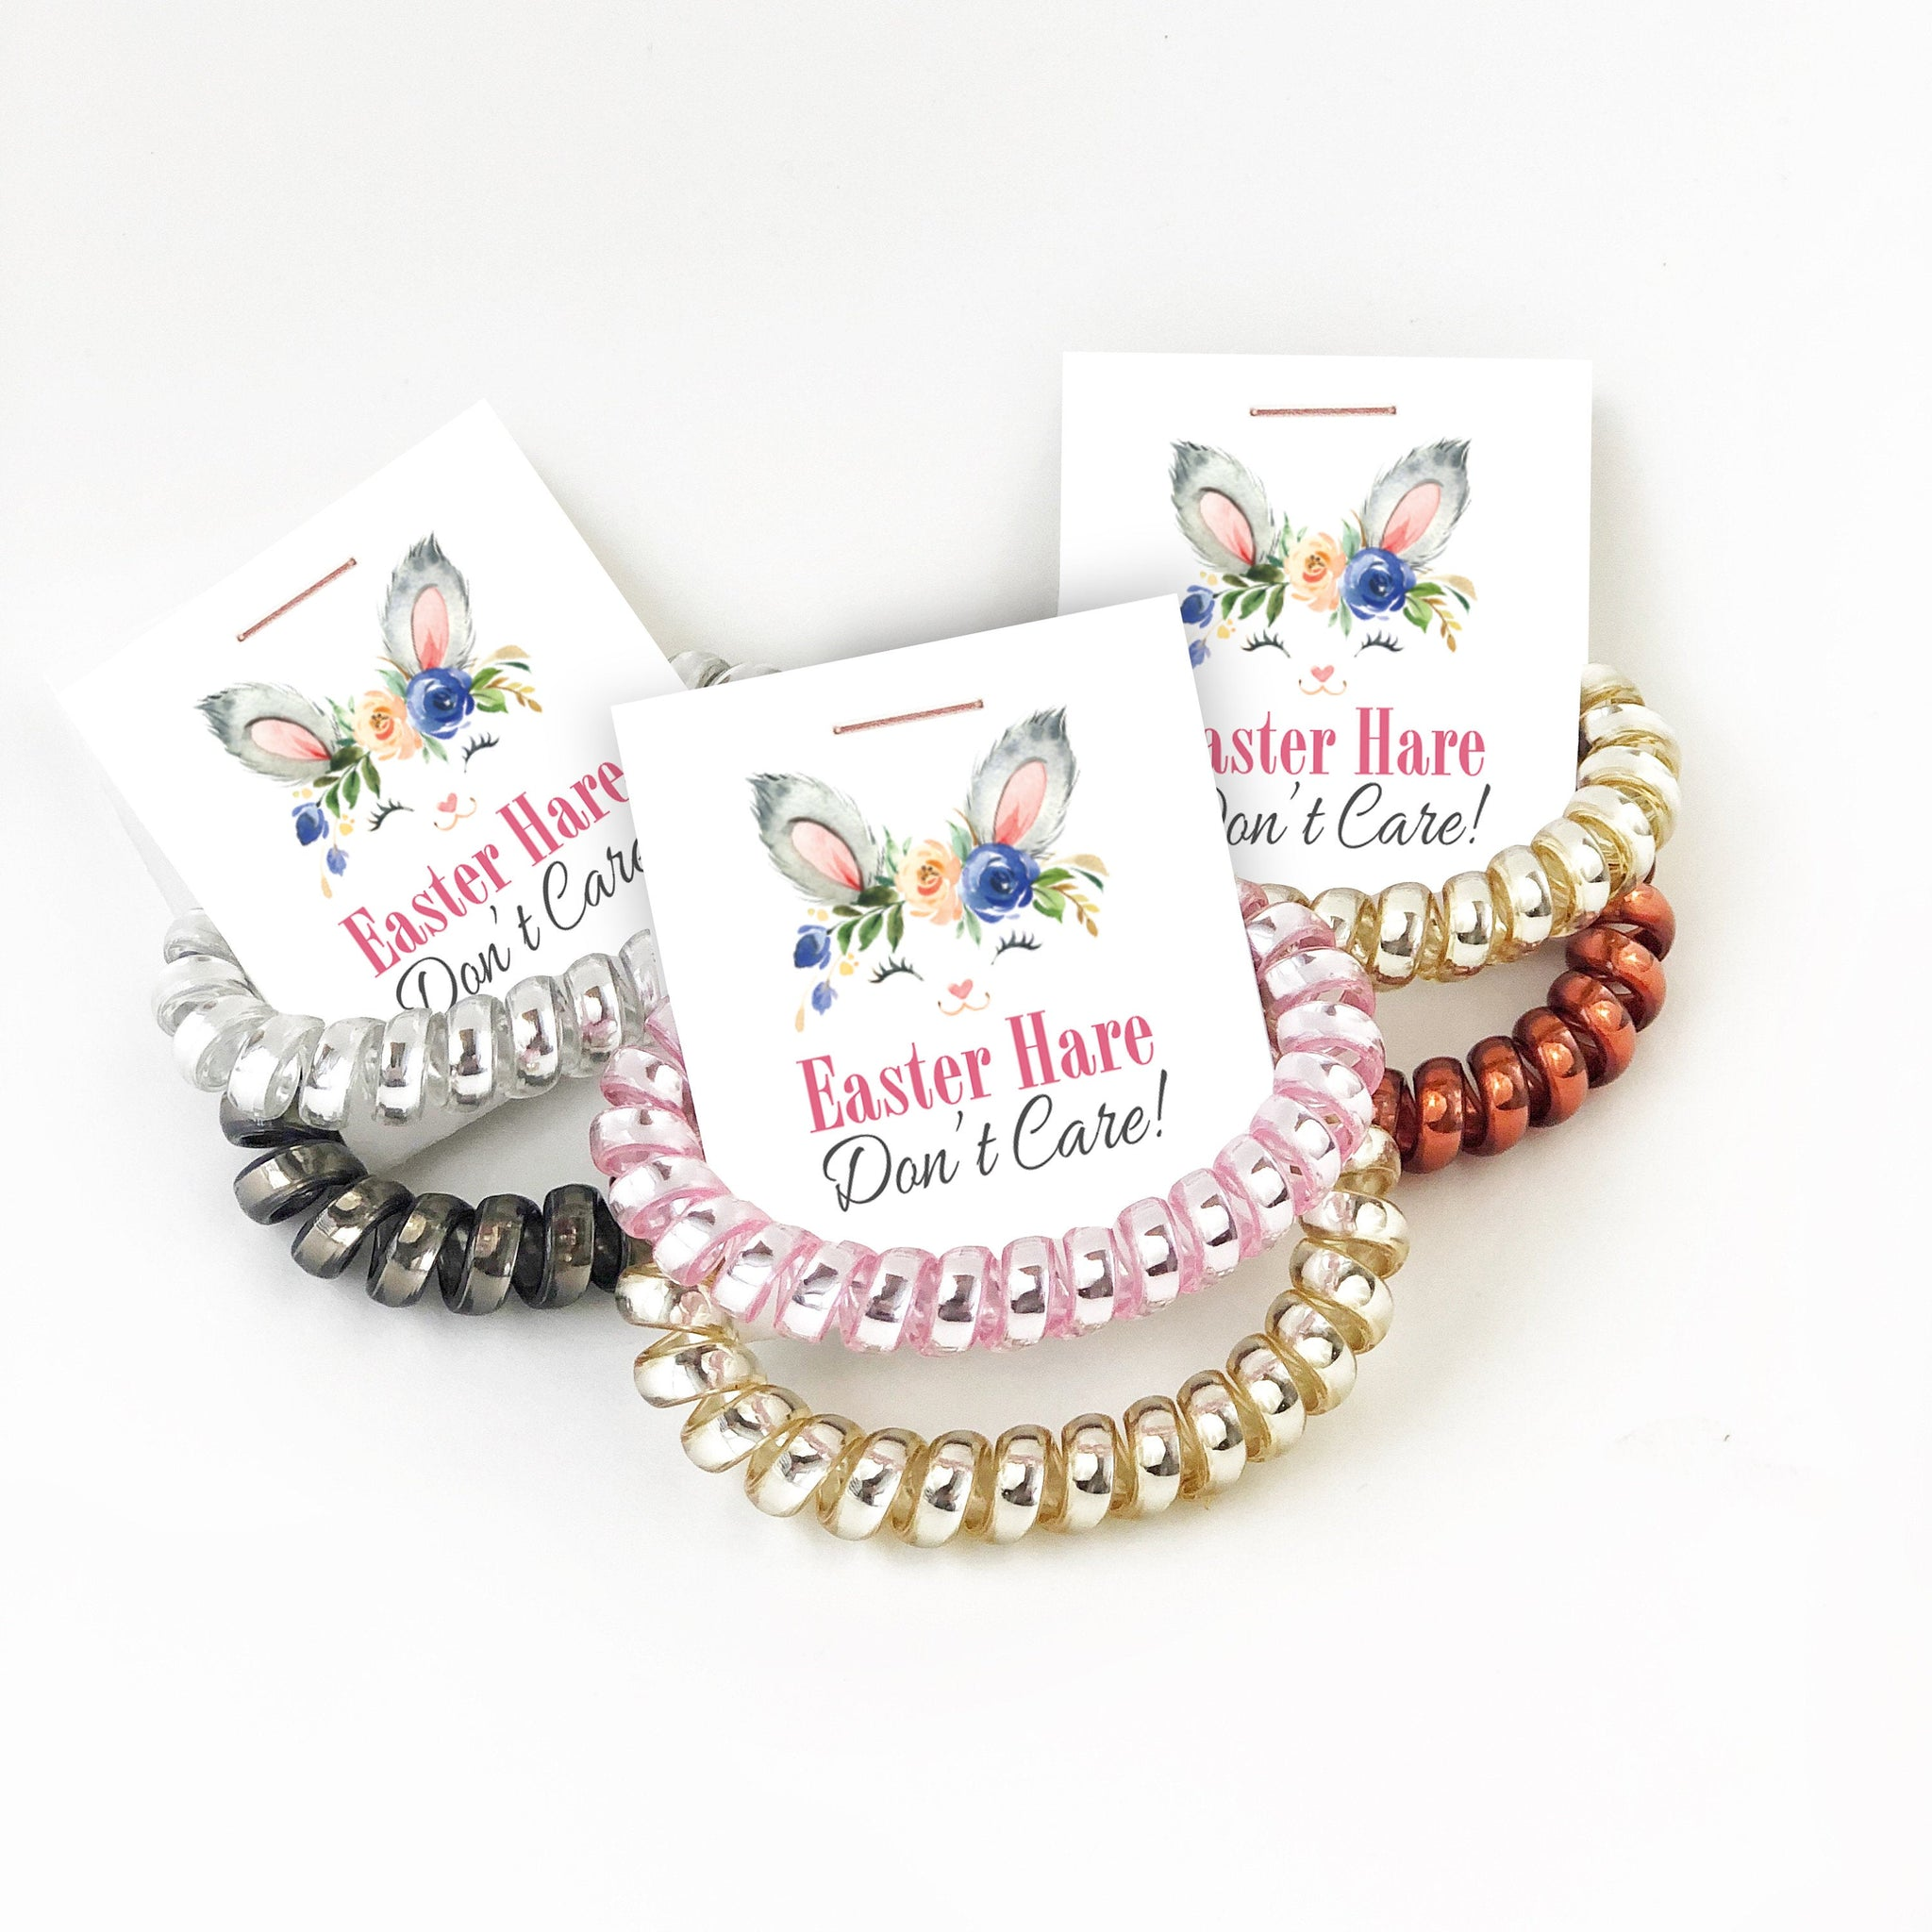 Easter Basket Stuffers, Spiral Hair Ties - B100 - @PlumPolkaDot